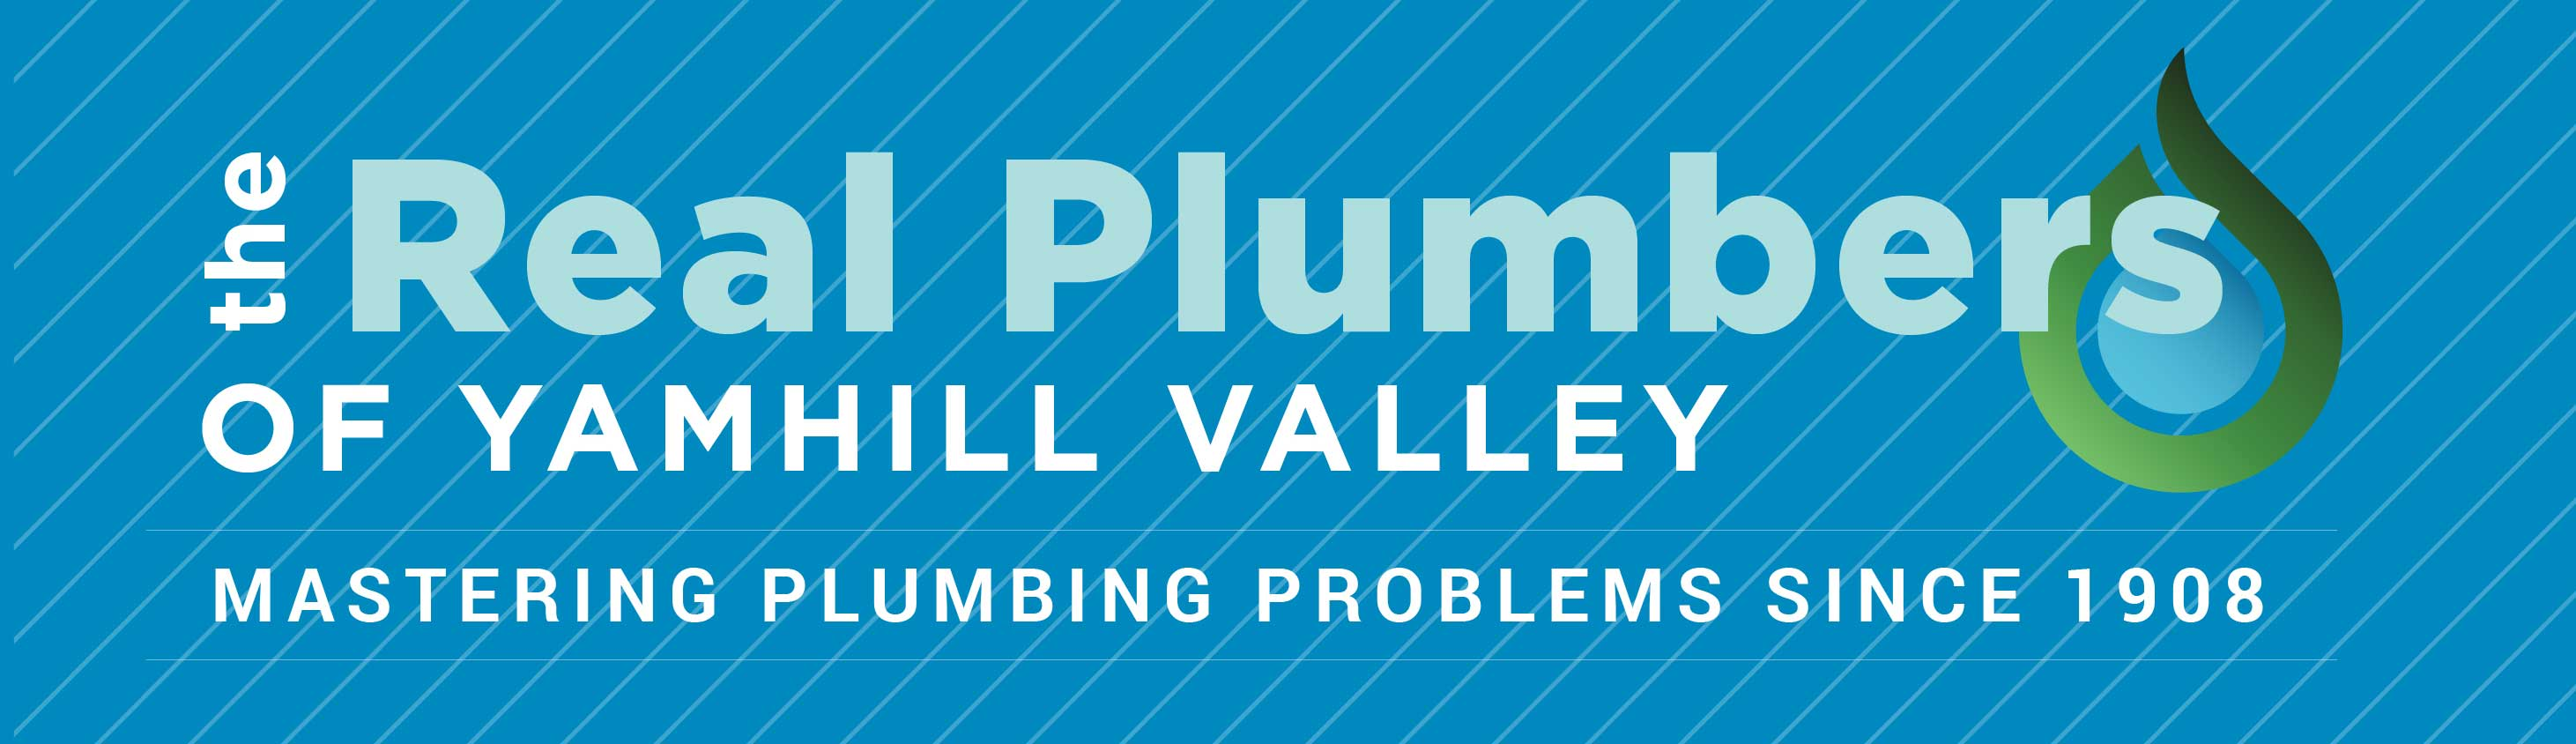 Gormley Plumbing + Mechanical are the real plumbers of Yamhill Valley